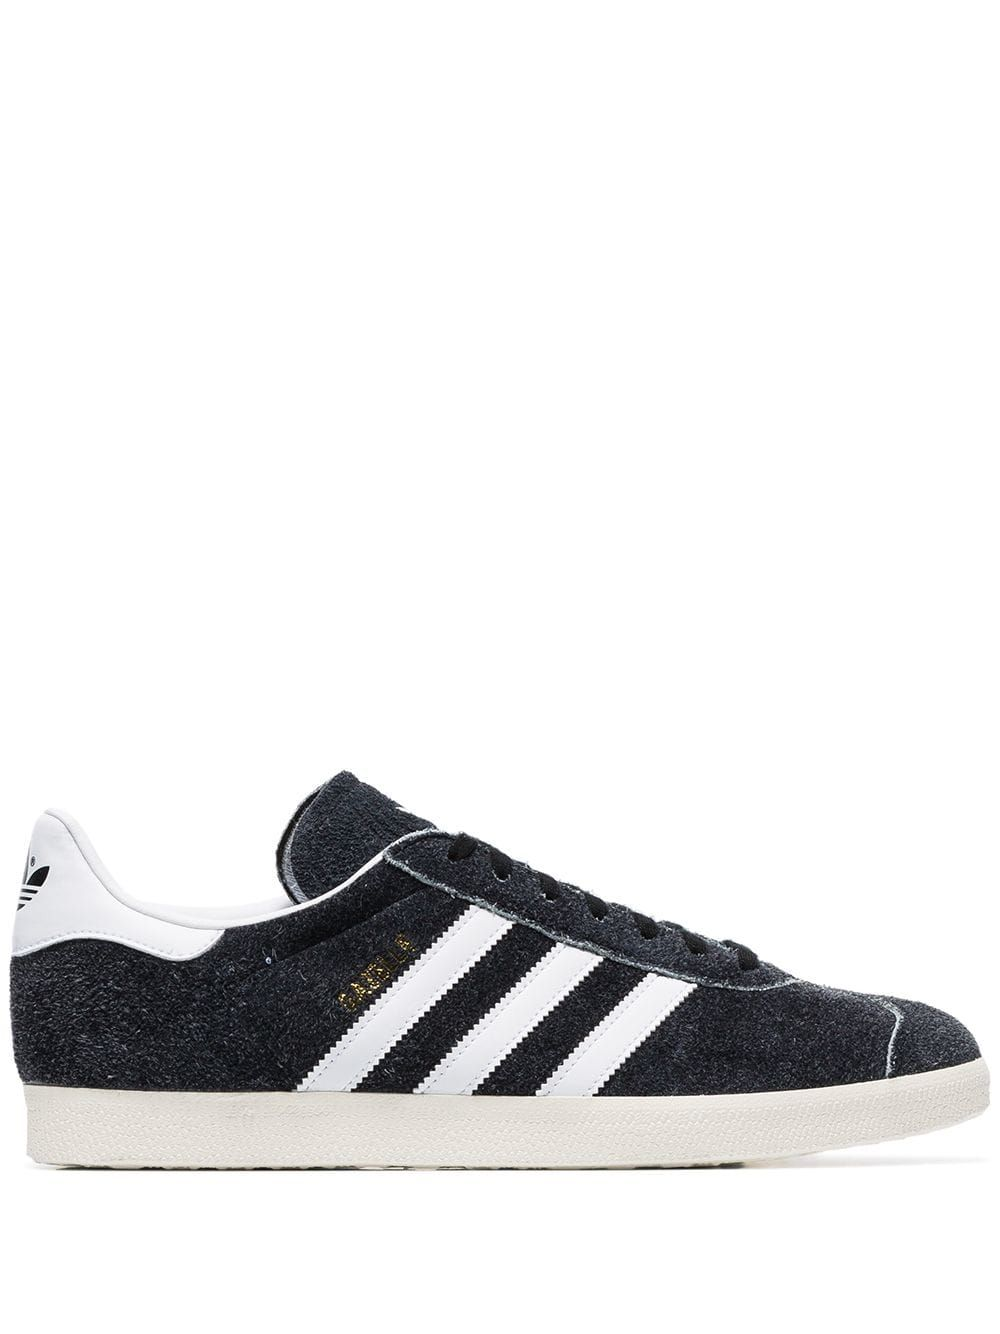 newest collection 22475 988e3 ADIDAS ORIGINALS ADIDAS BLACK AND WHITE GAZELLE SUEDE LOW TOP SNEAKERS.   adidasoriginals  shoes